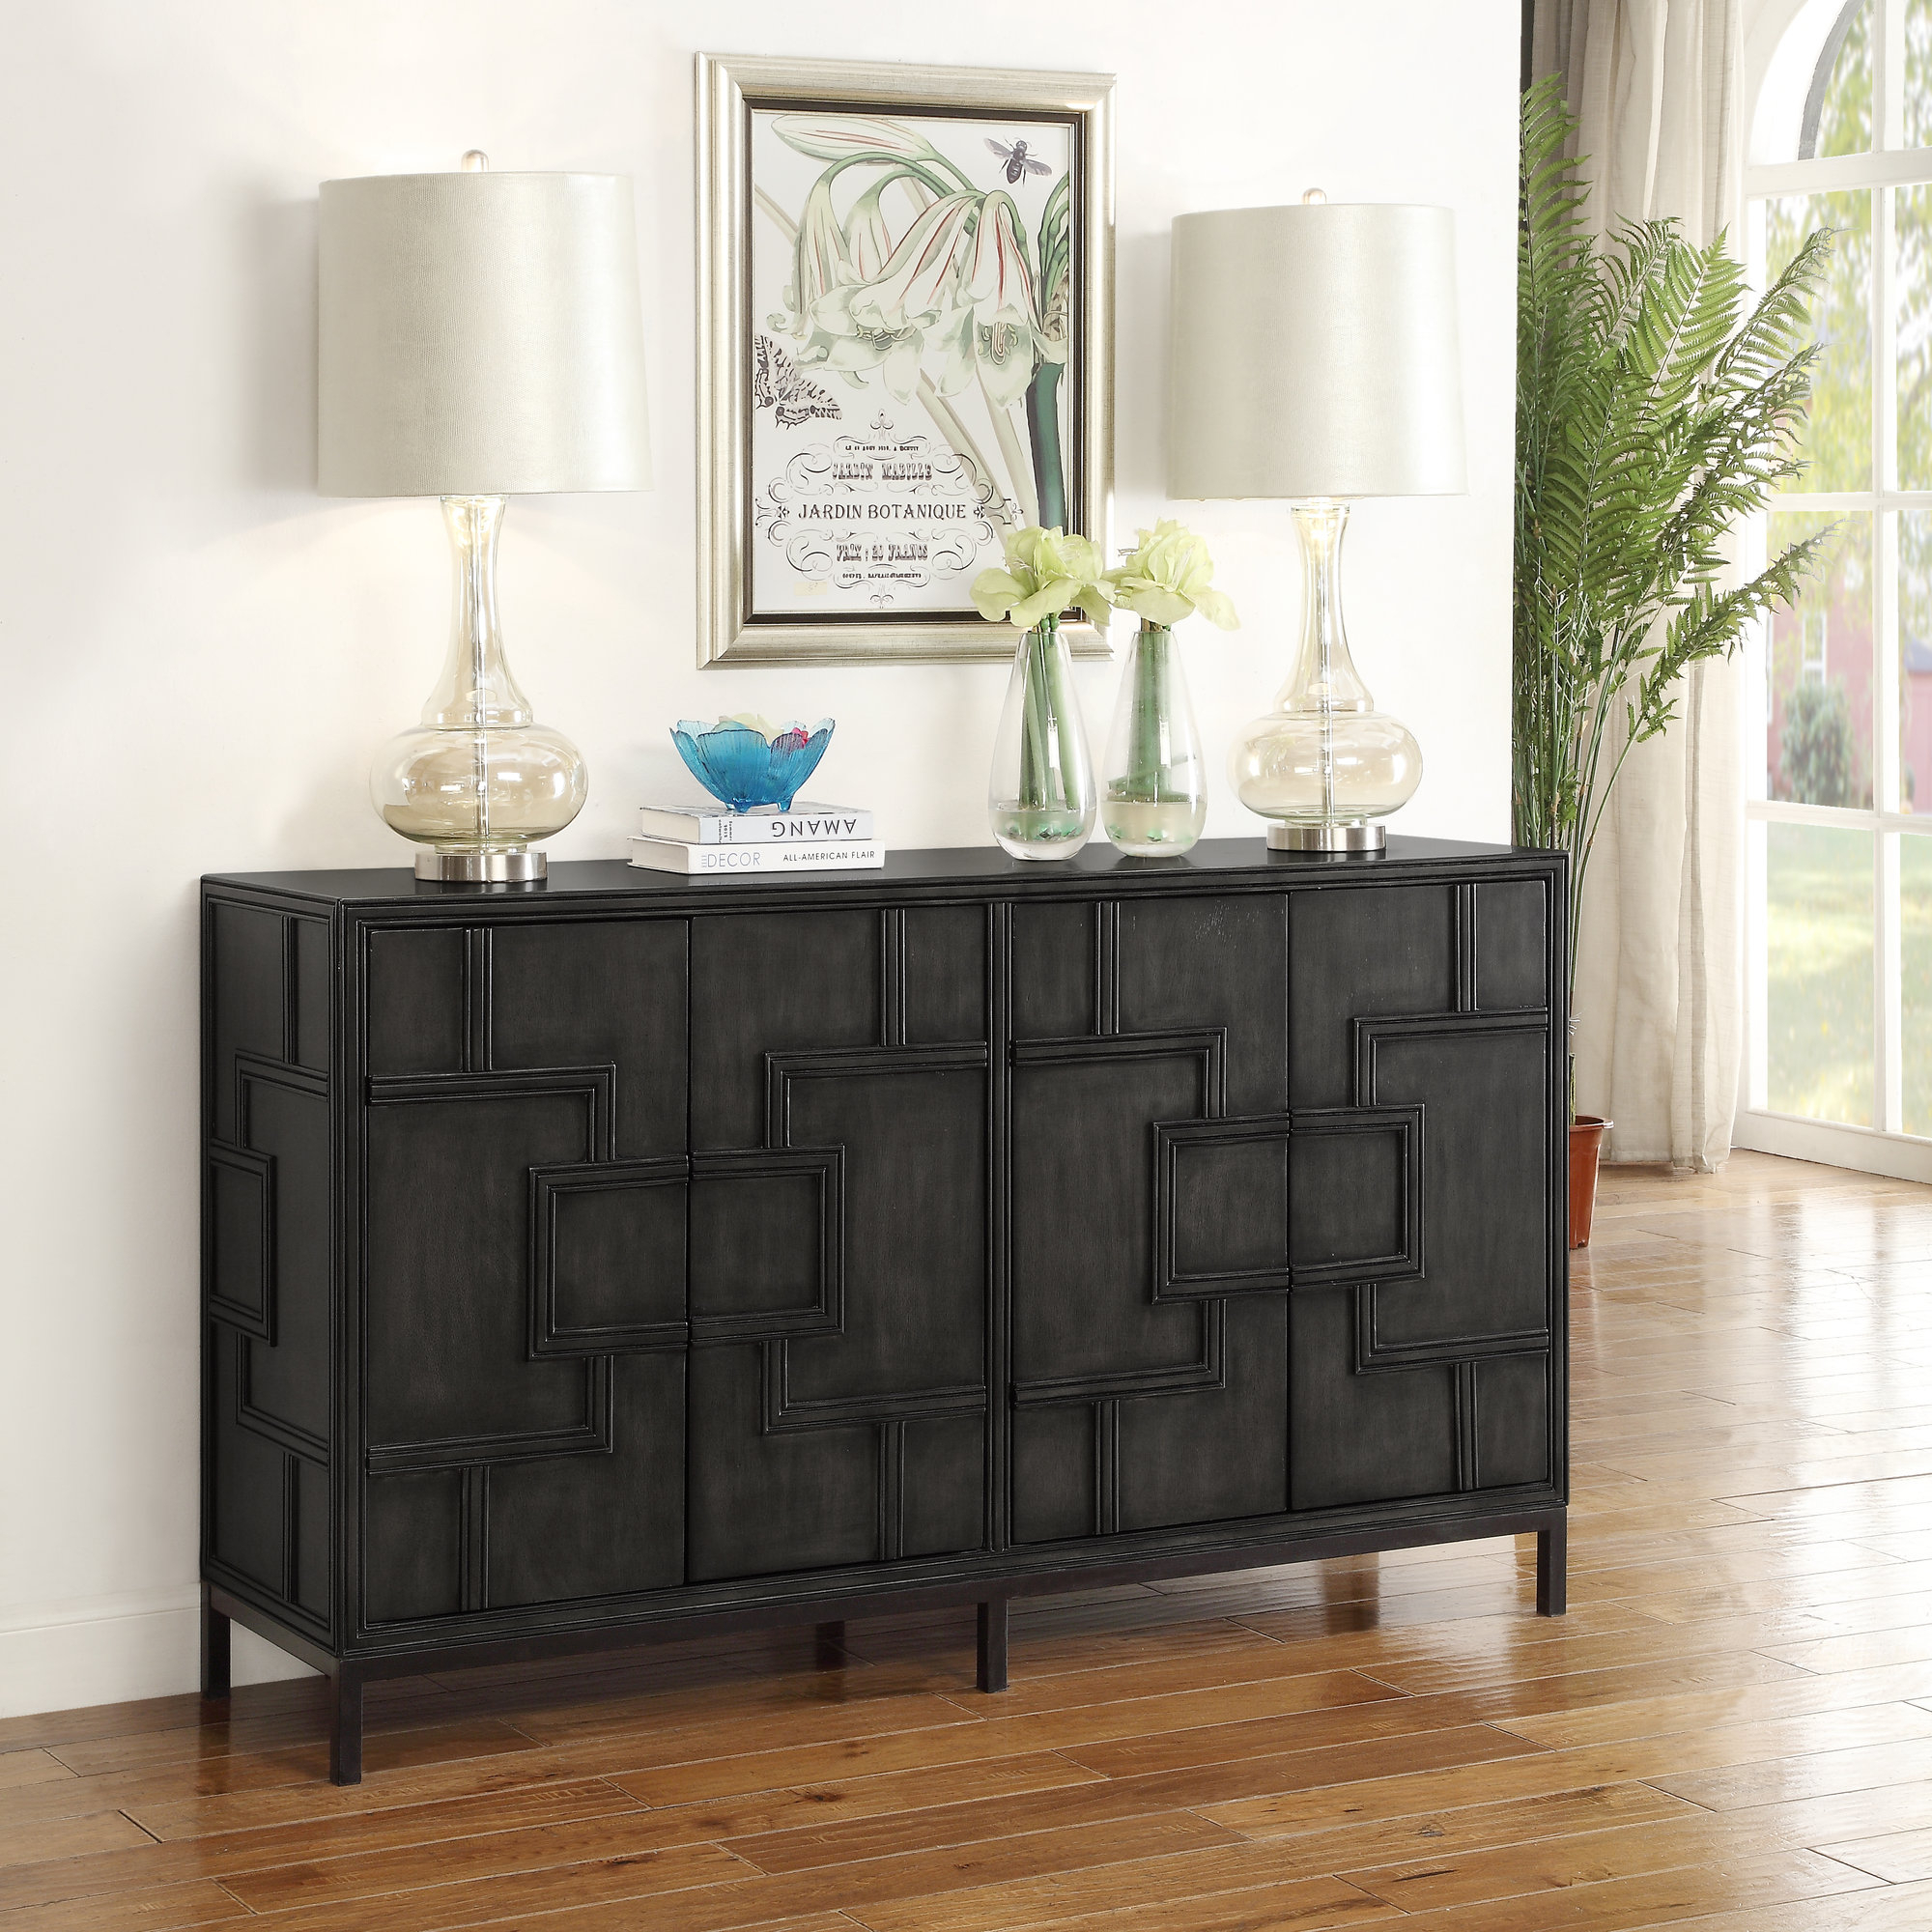 Inspiration about Details About Bloomsbury Market Candide Wood Credenza With Regard To Newest Candide Wood Credenzas (#1 of 20)